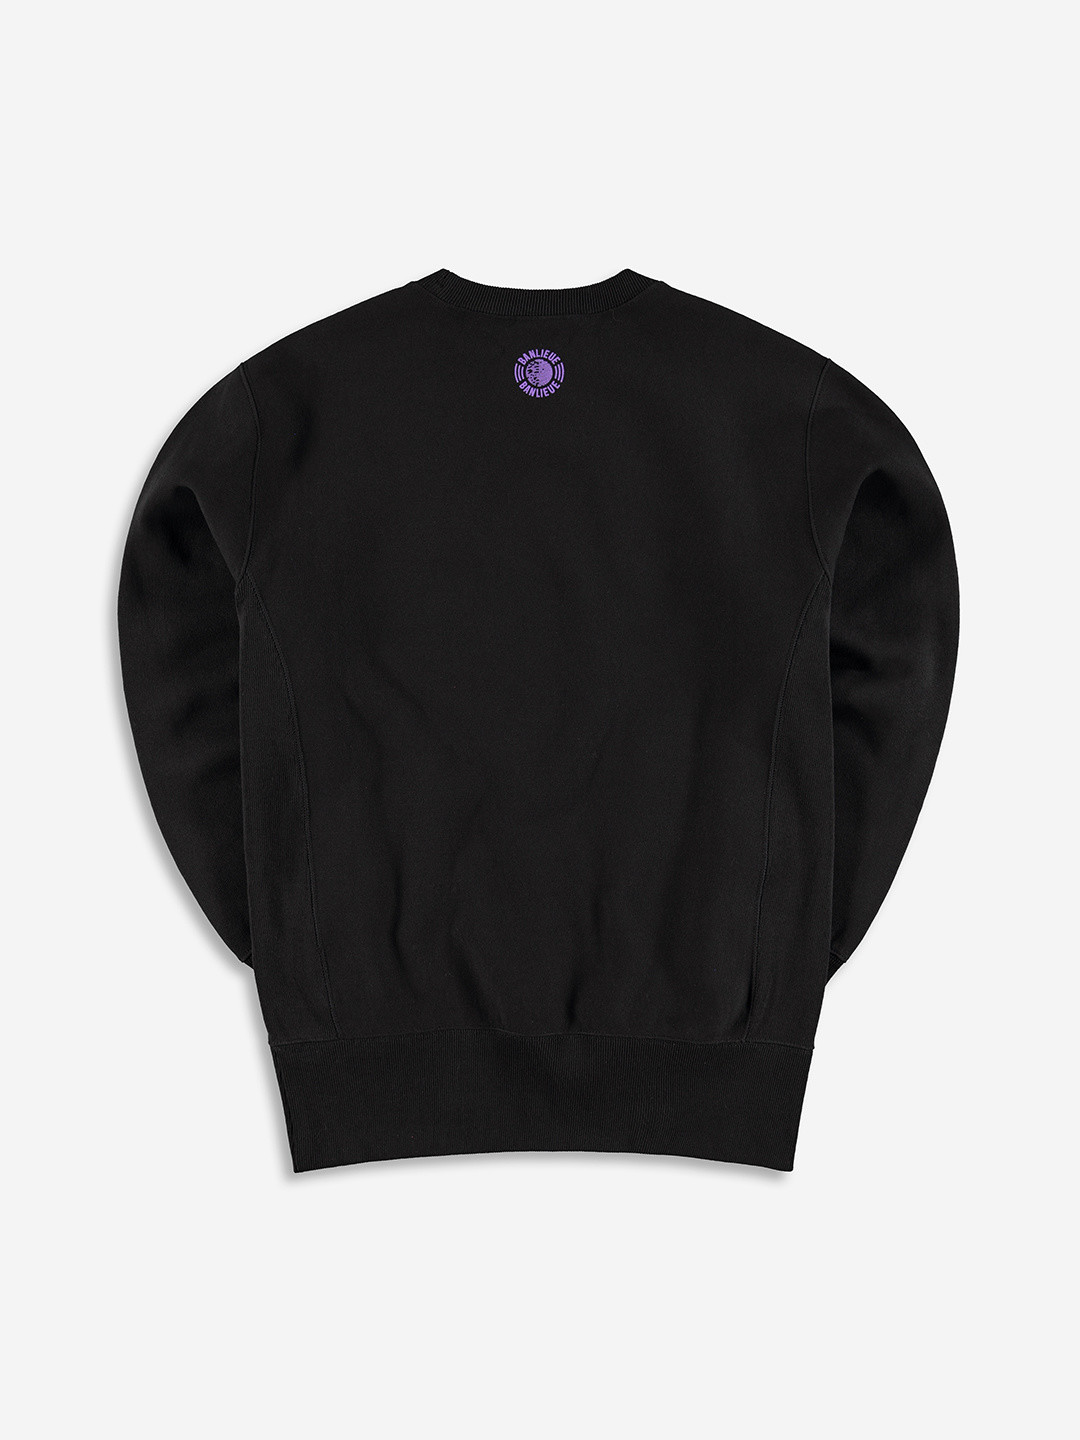 BANLIEUE X CHAMPION SWEATER BLACK